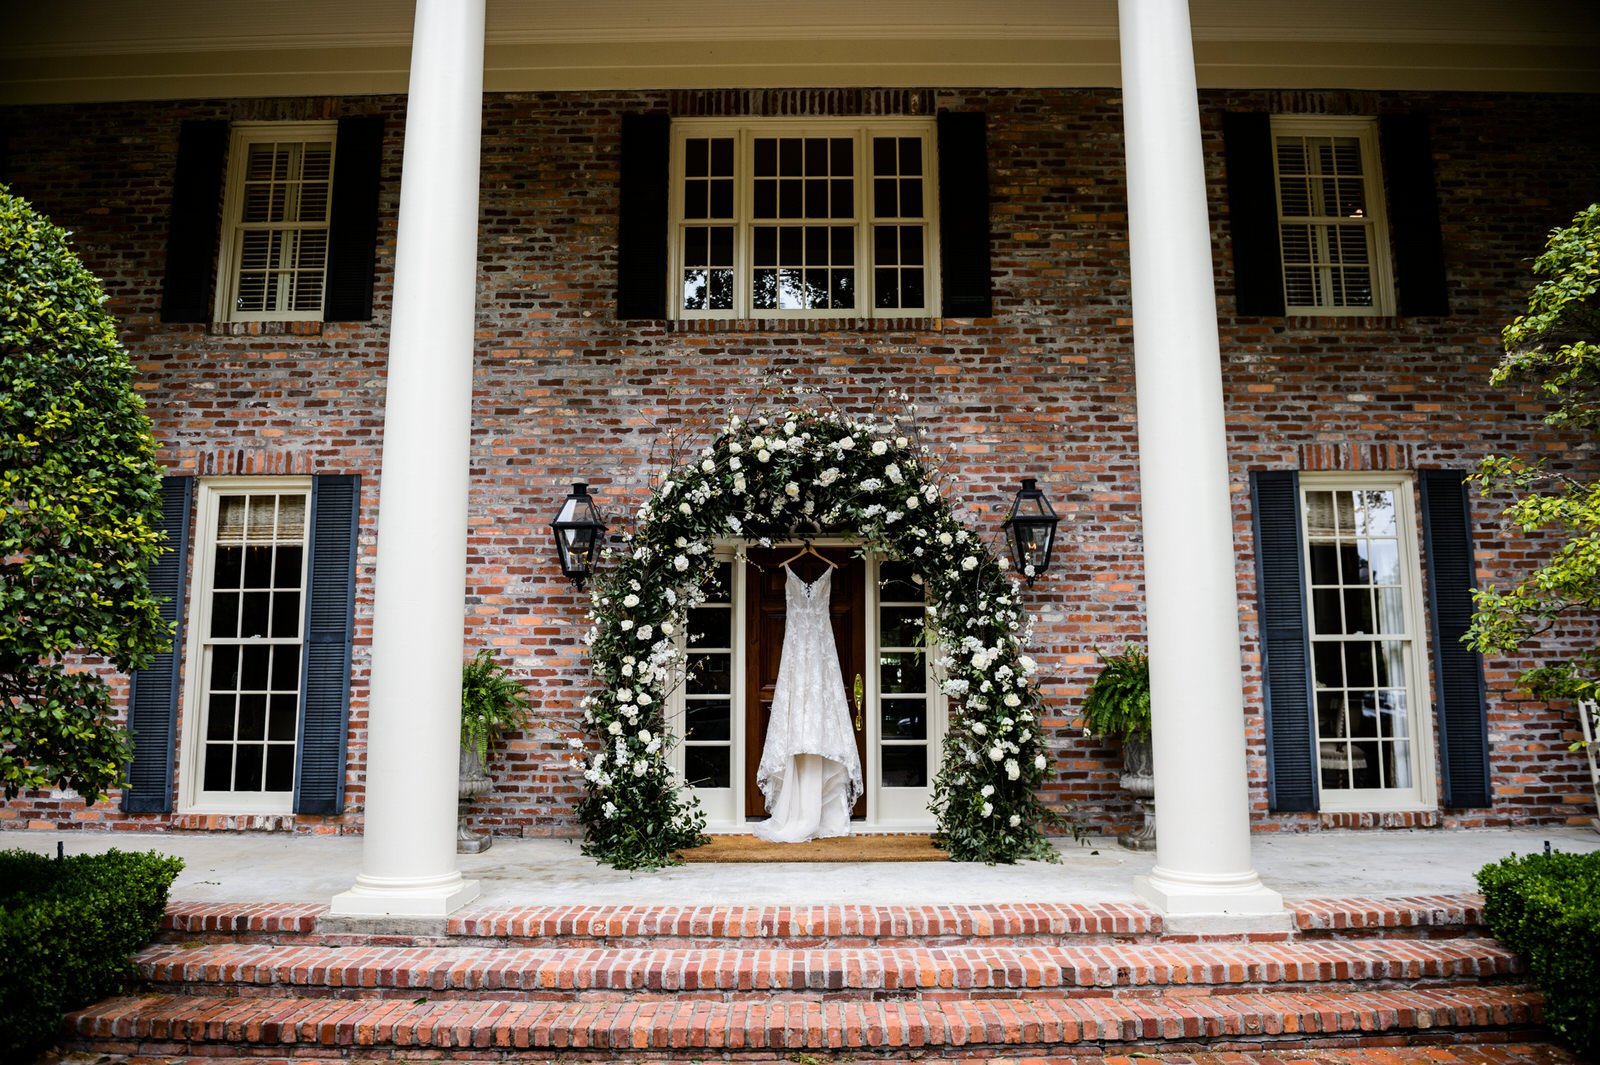 Floral arch entry with all white flowers and greenery. Private residence in Houston, Texas. Maxit Flower Design,  Alyssa Meeks  ,  Chris Bailey Photography